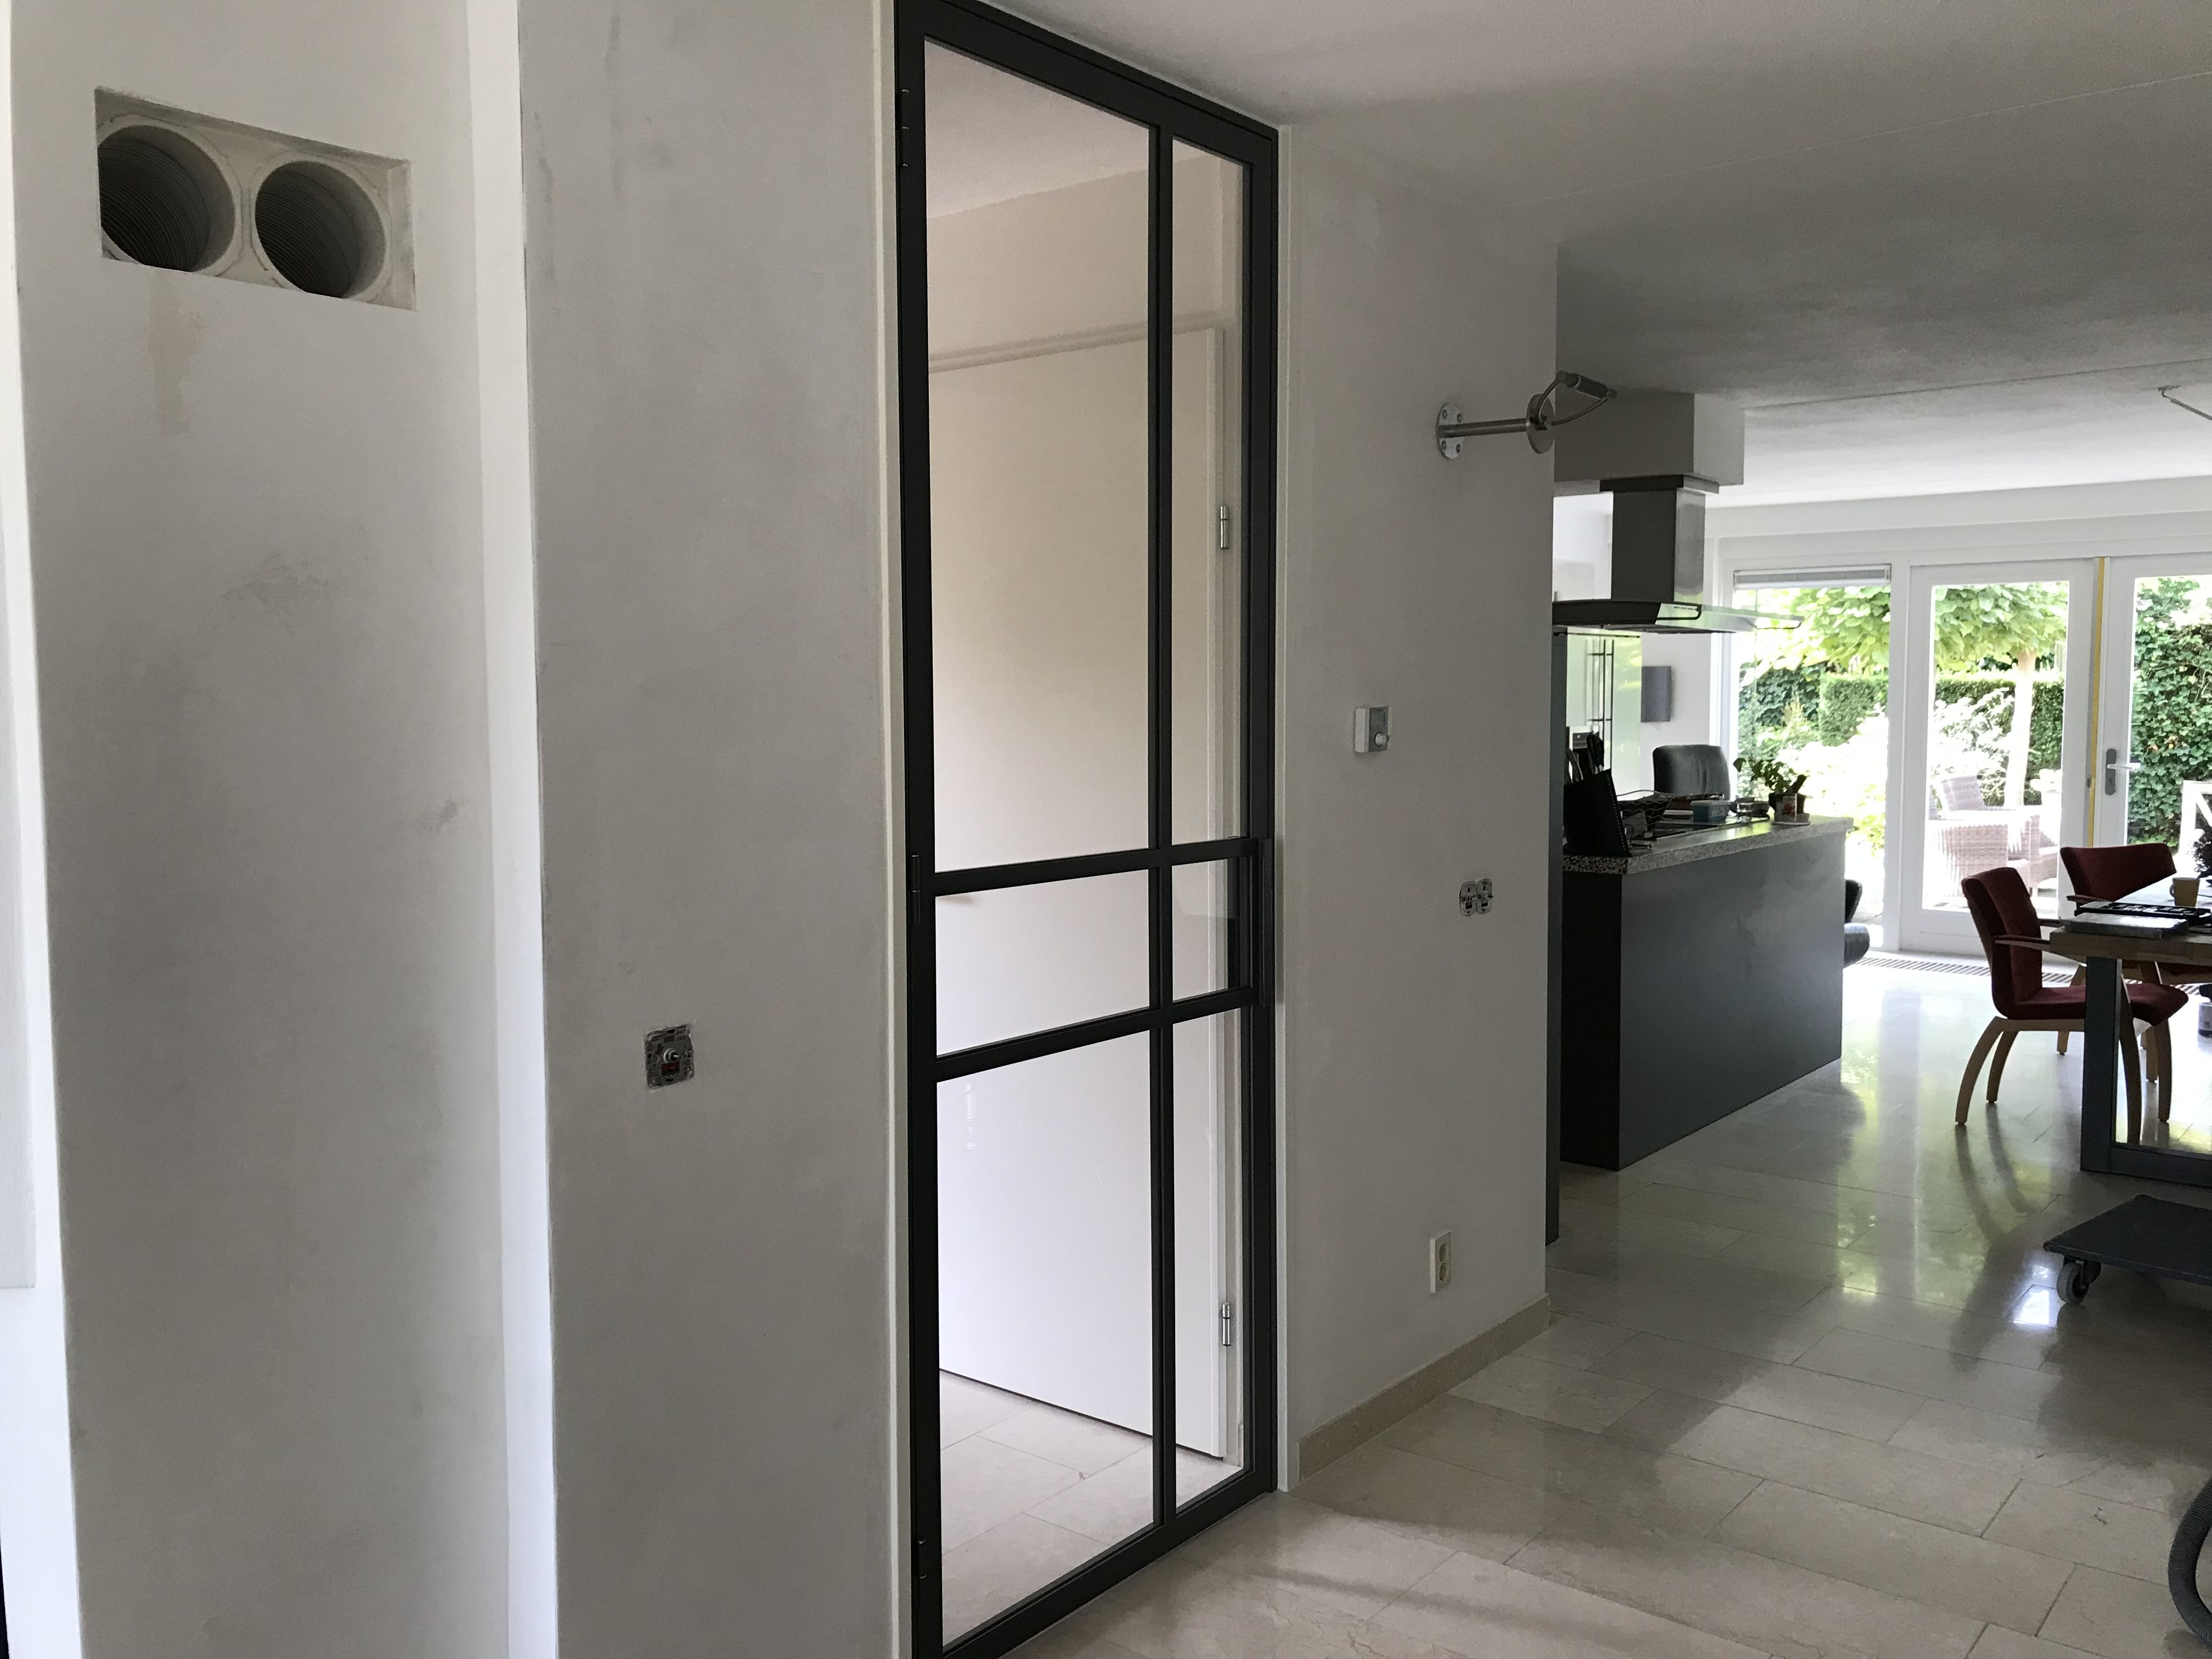 Steel hinged door with 6 compartments